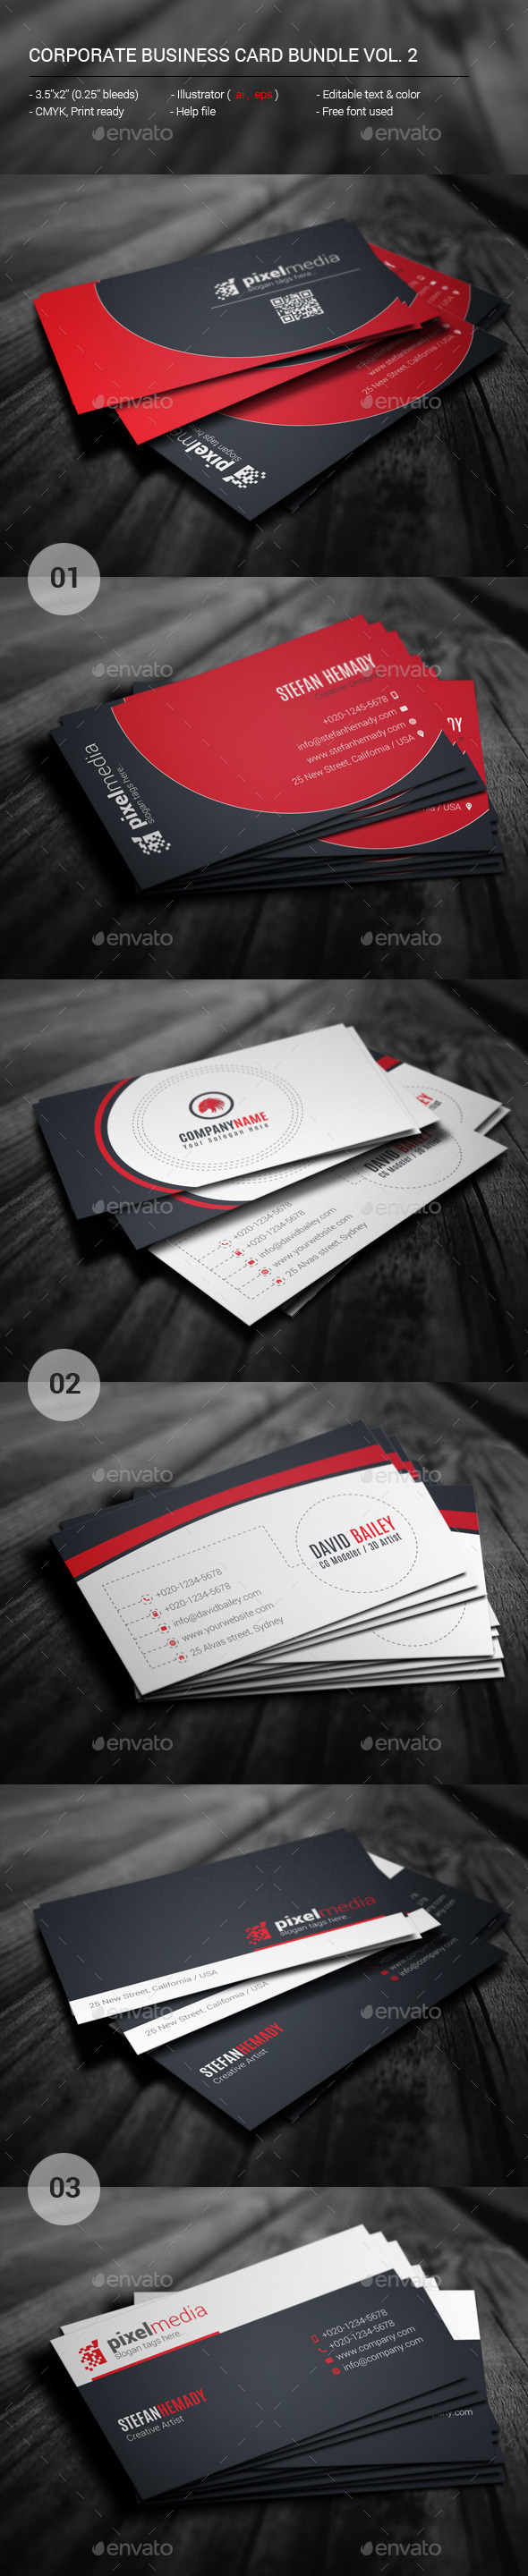 GraphicRiver Corporate Business Card Bundle Vol 2 11494674